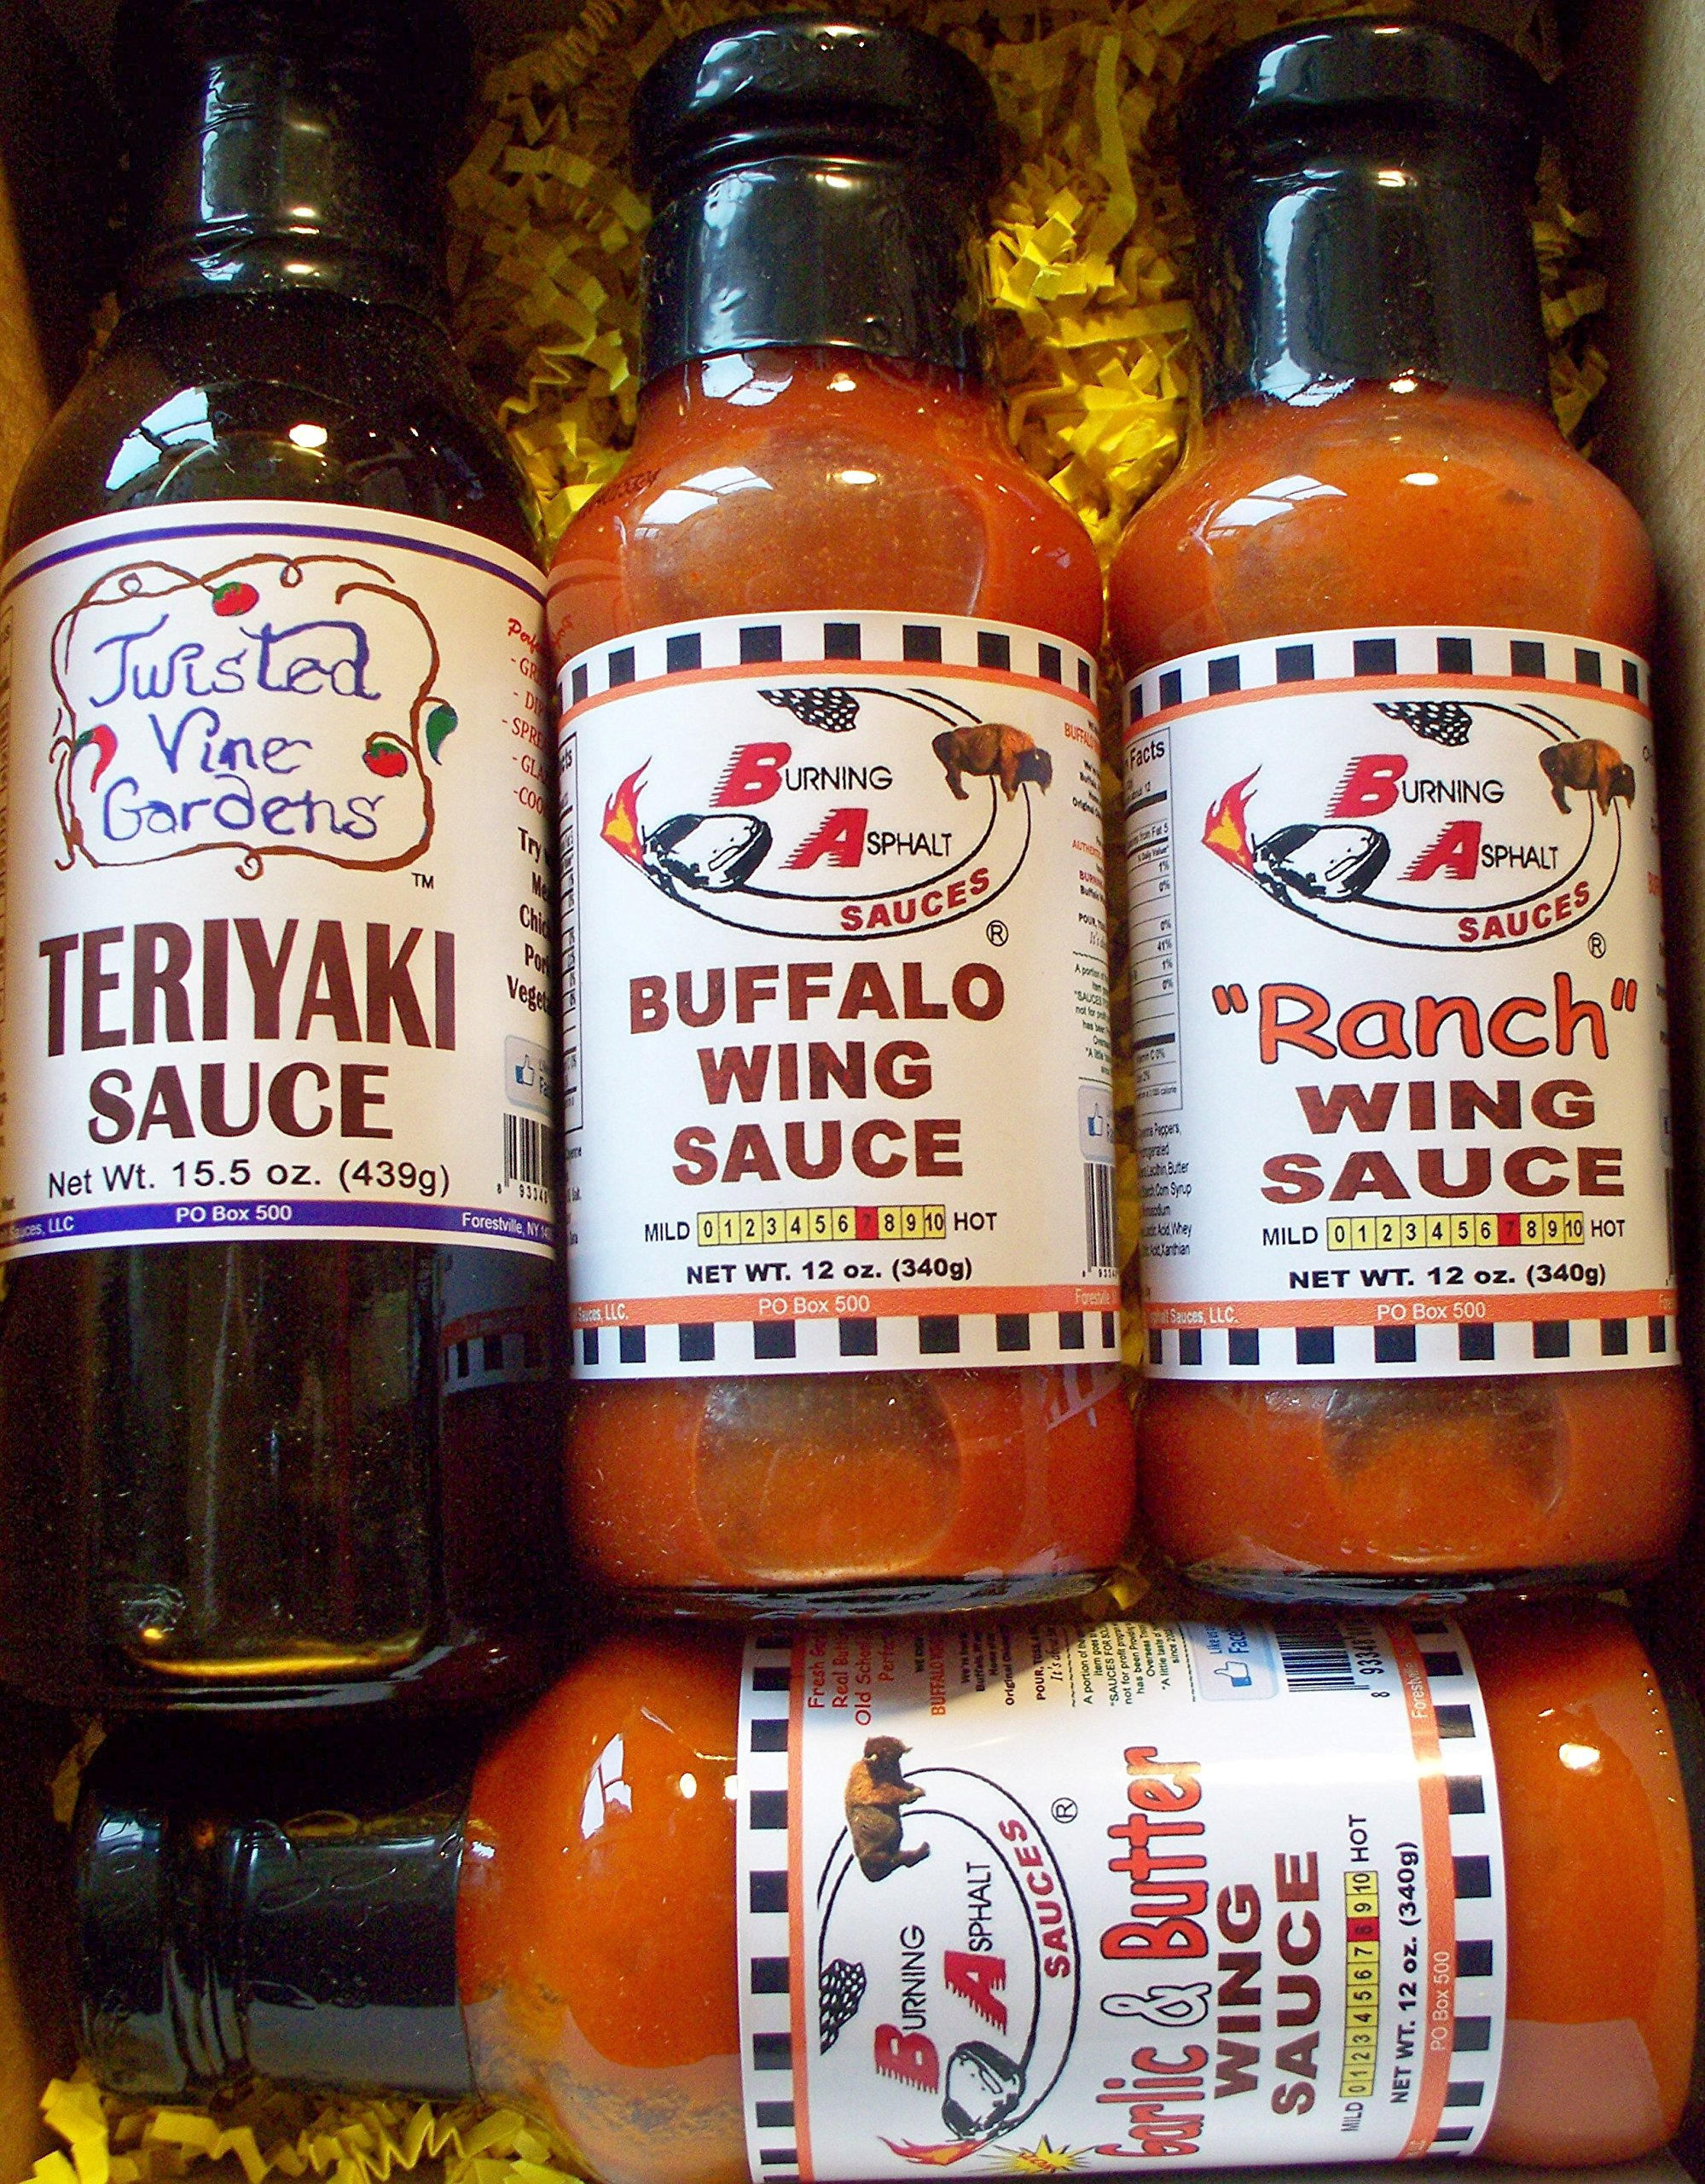 Buffalo Wing Sauce 4-Pack Gift Set/Box - From Buffalo, NY - BA Sauces